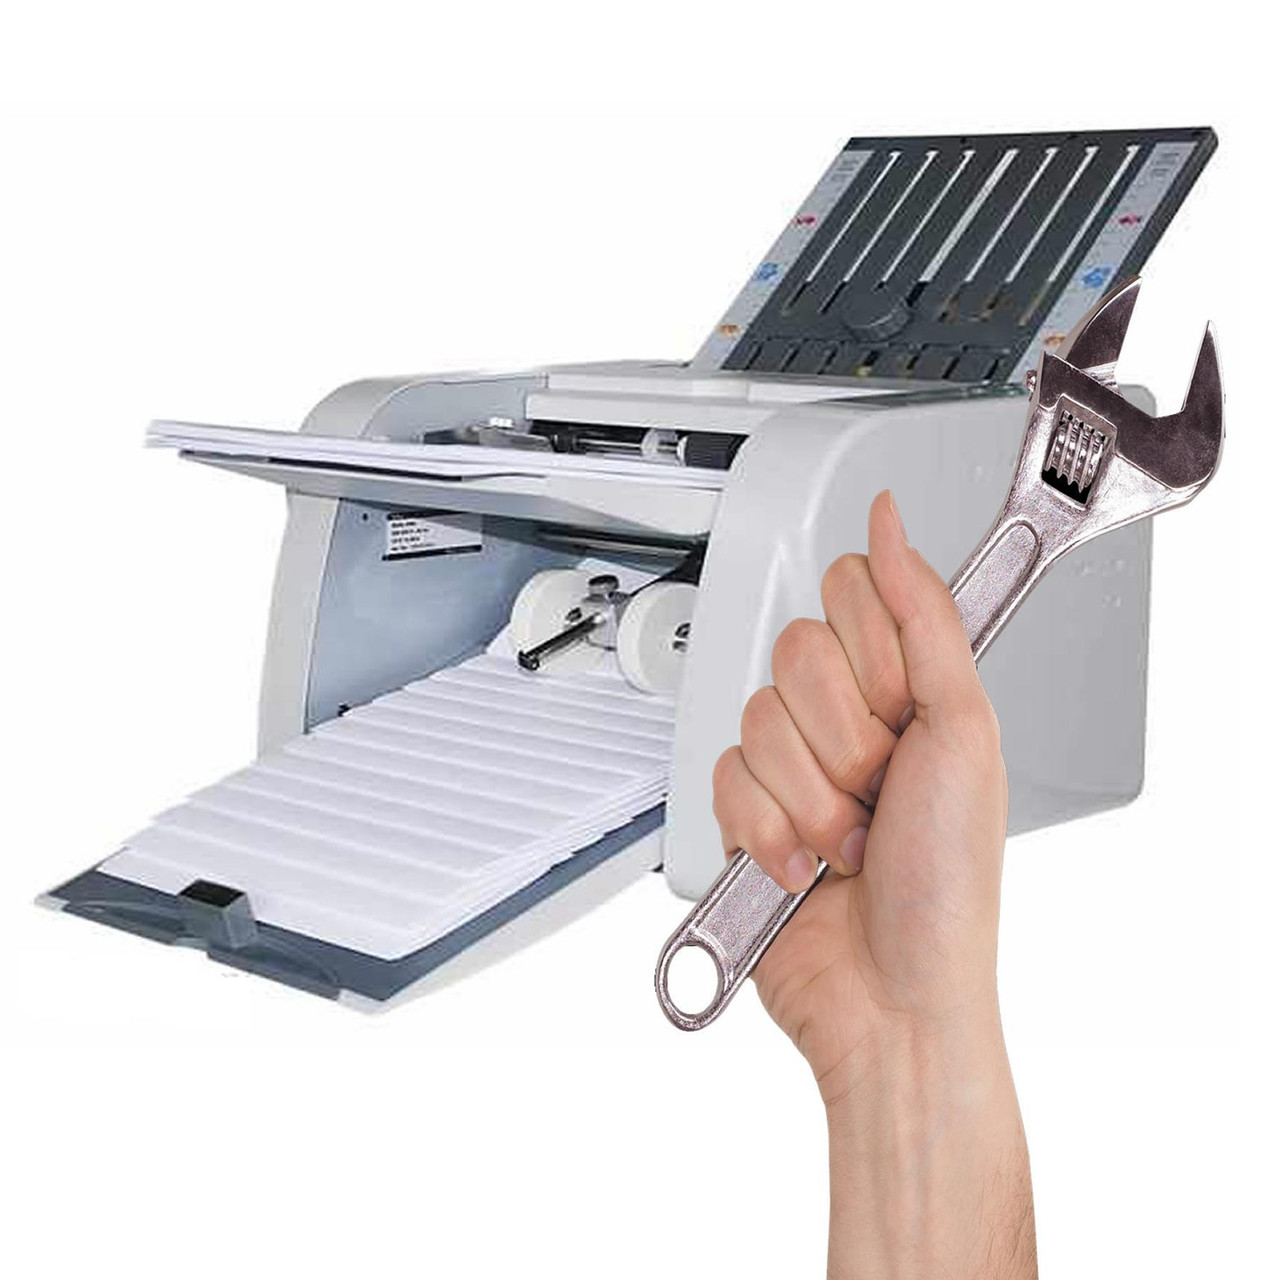 Back to Base Service / Repair for A4 Paper Folding Machines